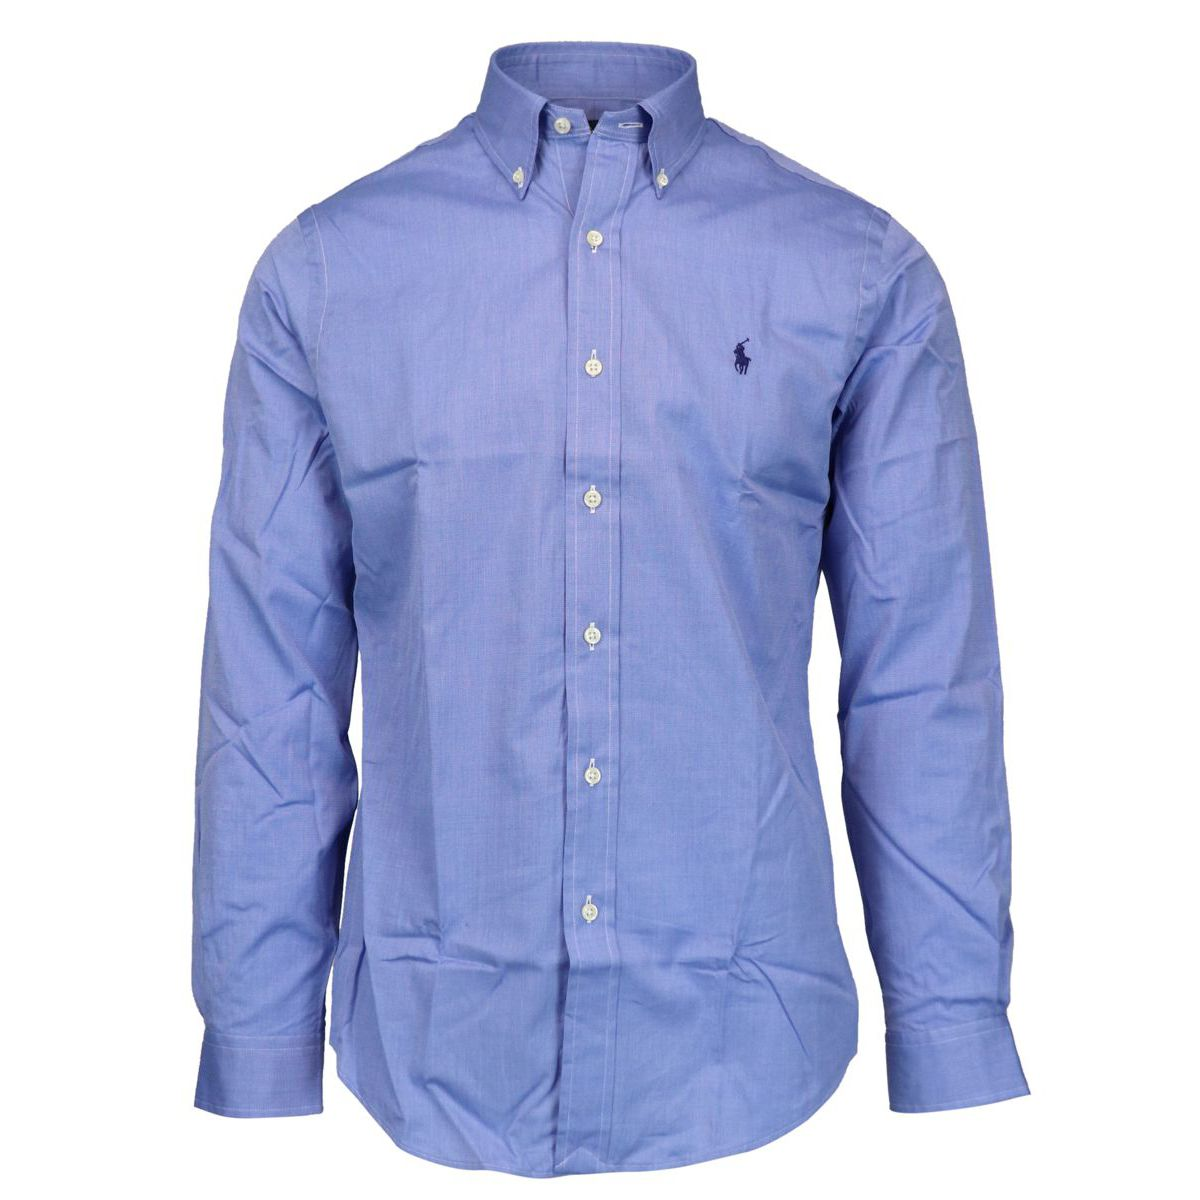 Custom-fit button-down cotton shirt with logo Light blue Polo Ralph Lauren